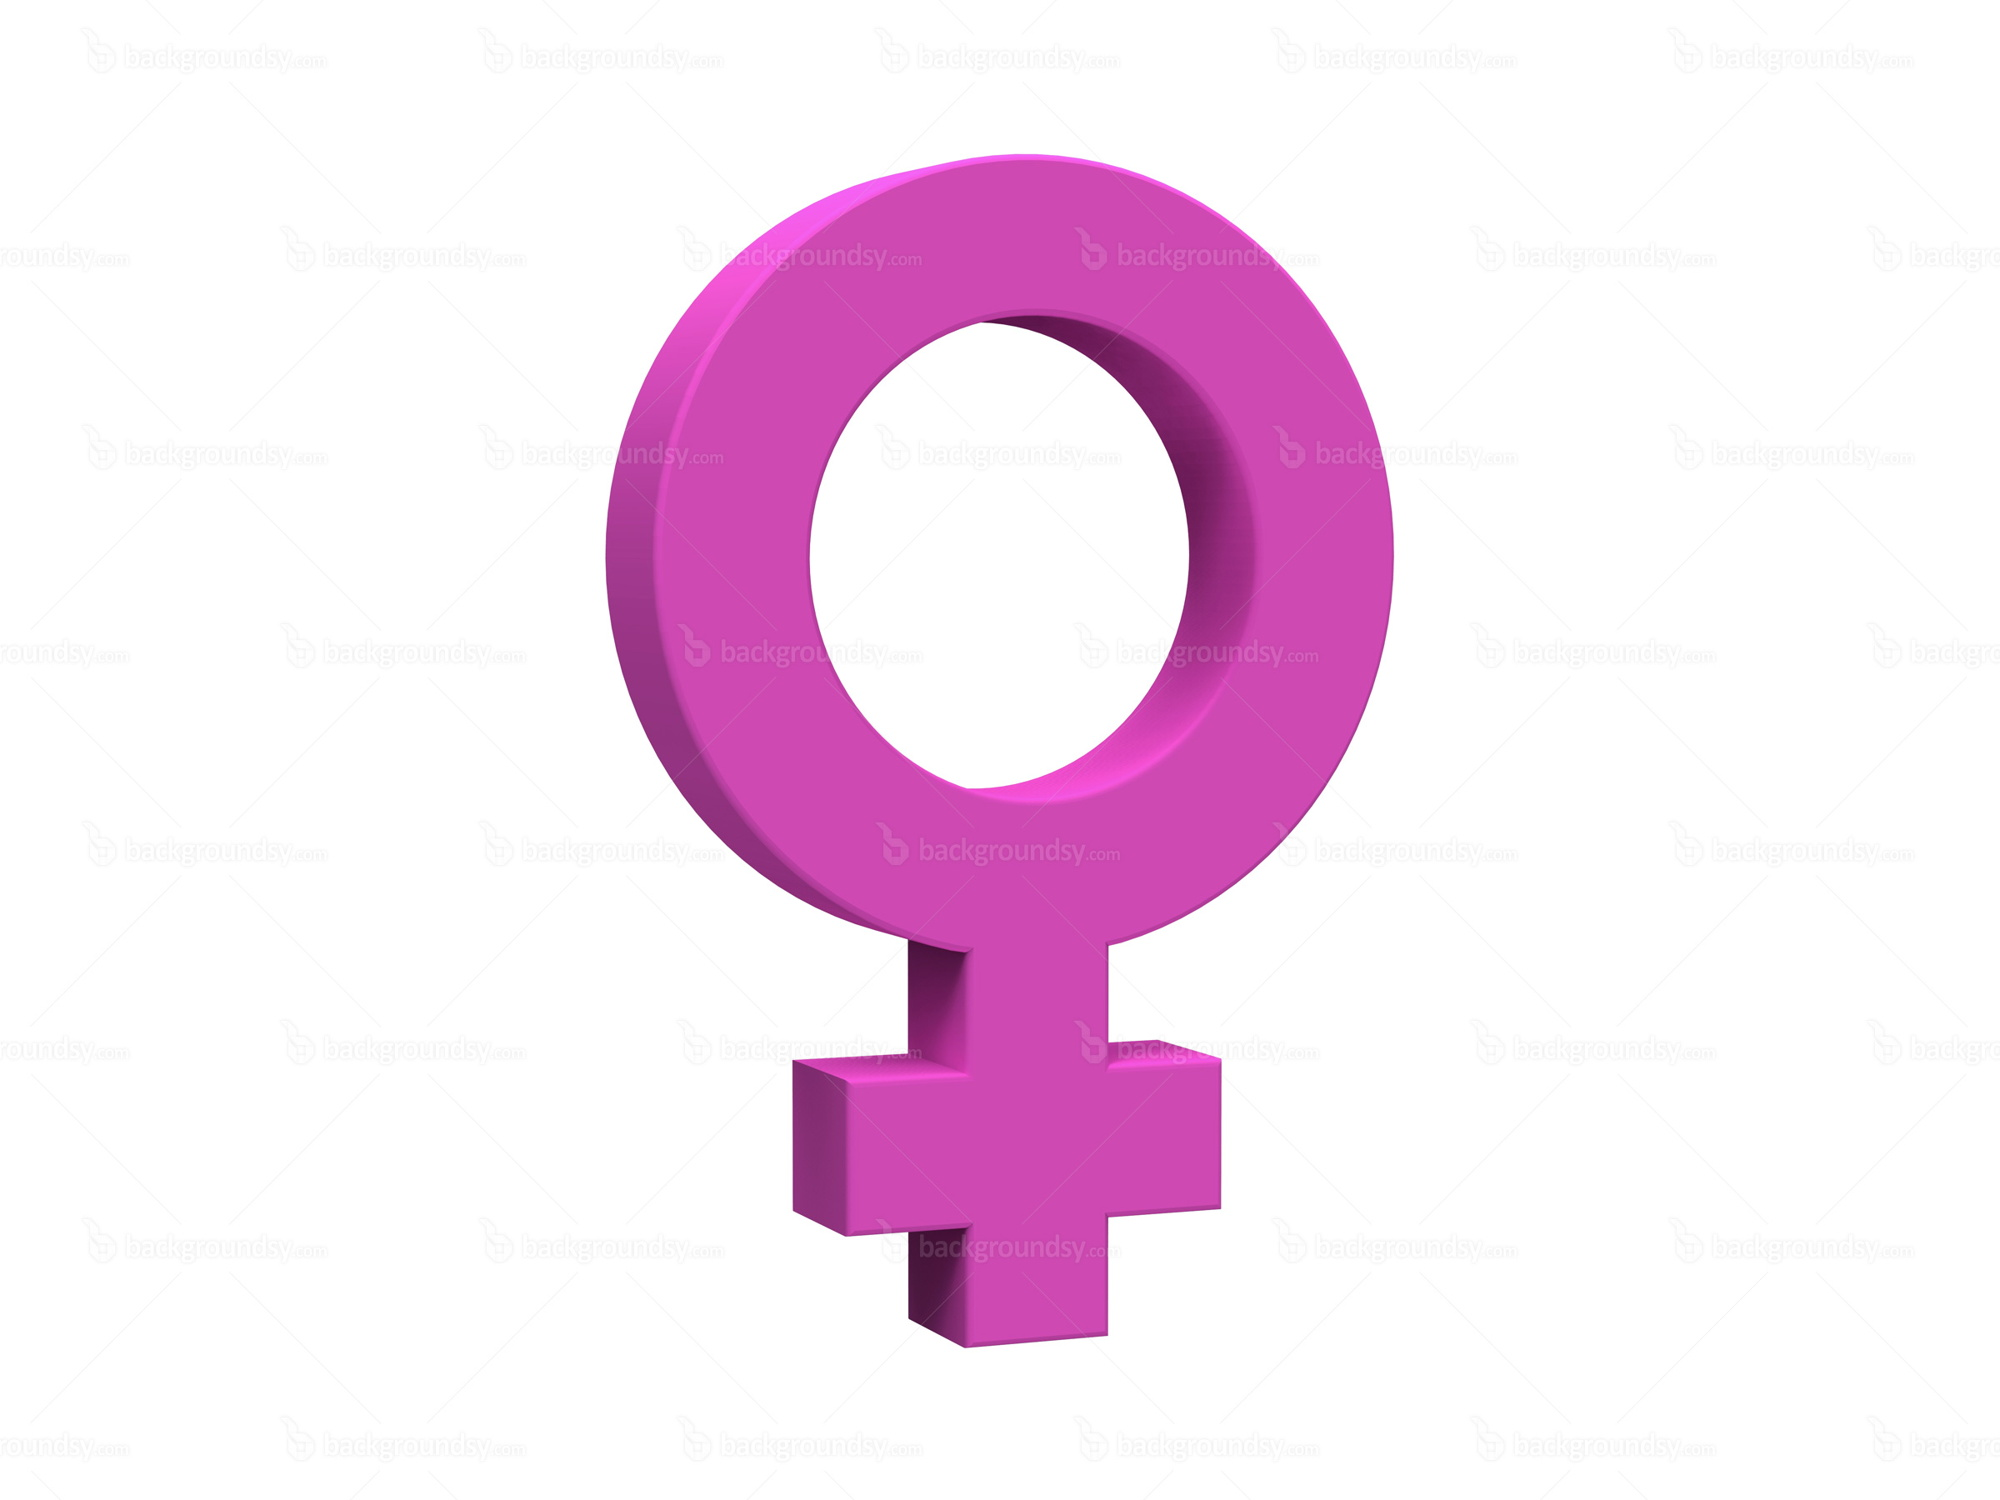 Terms Of Use >> Female symbol | Backgroundsy.com